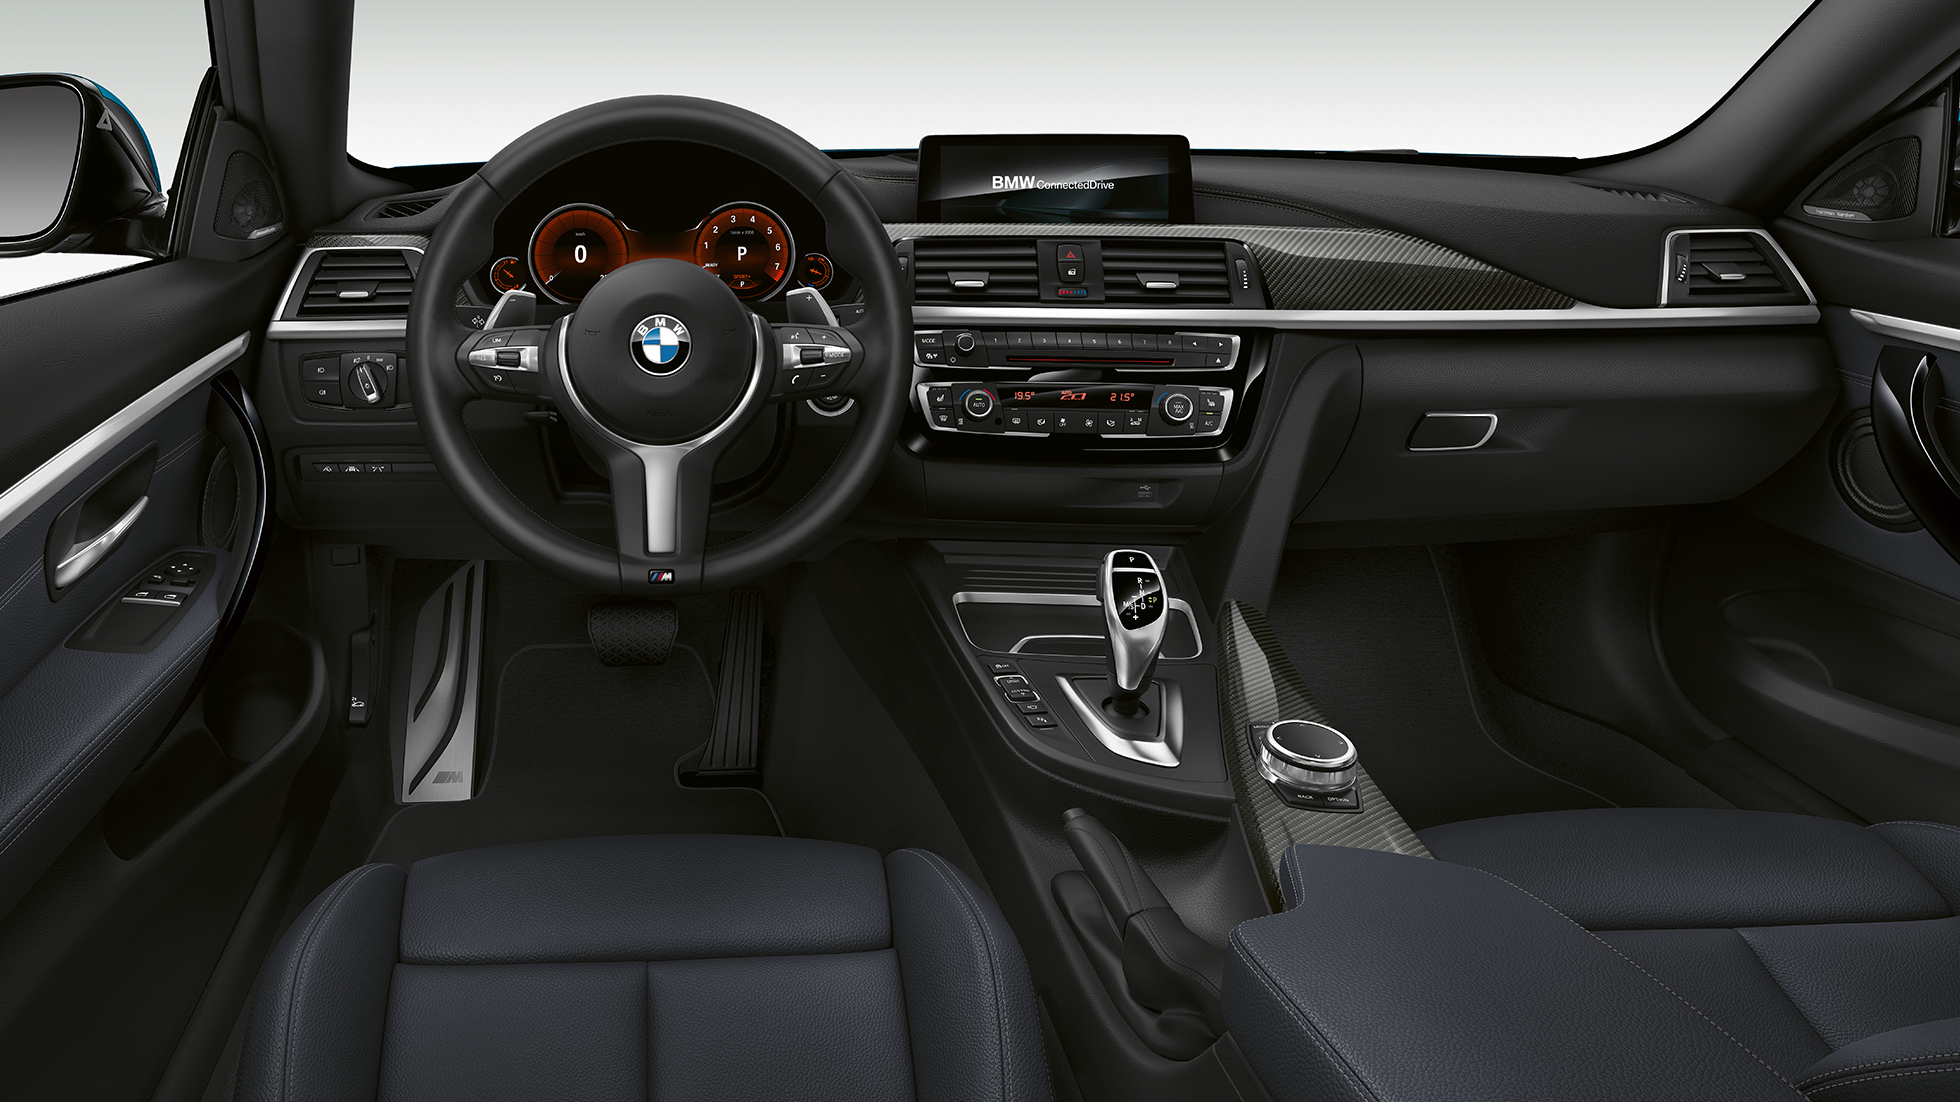 BMW 4 Series Coupé, Model M Sport wheels